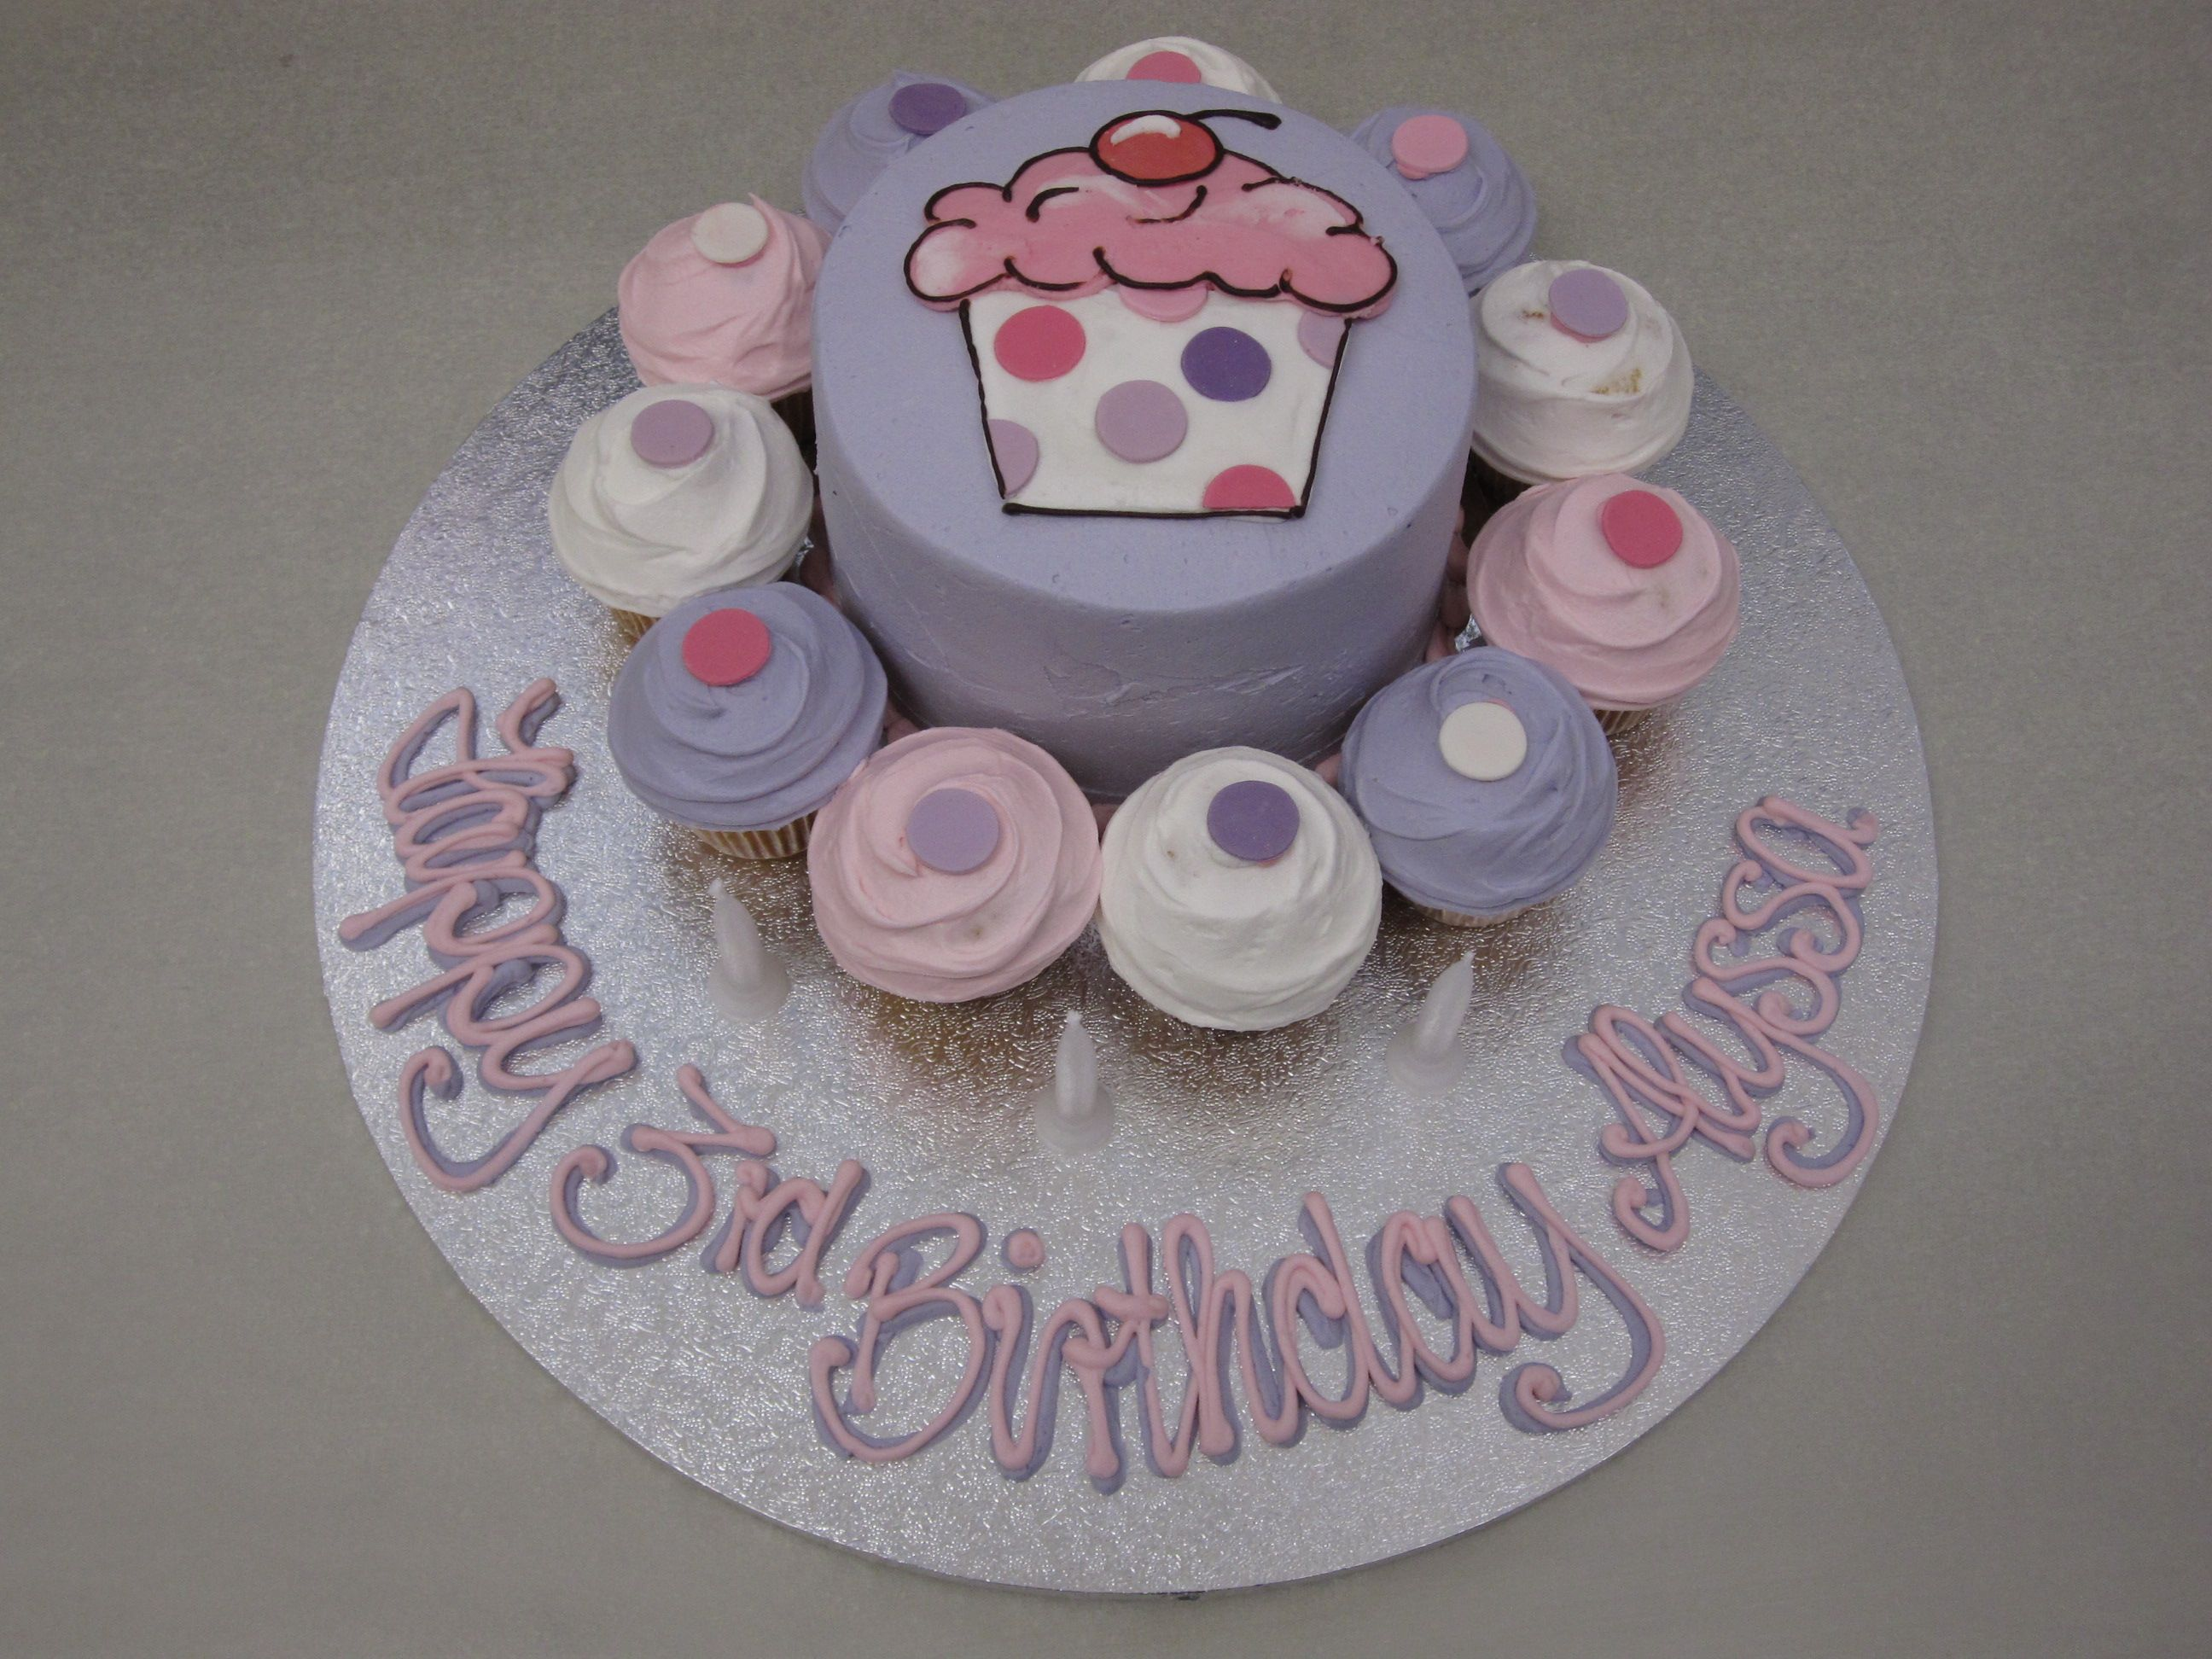 ... cake and mini cupcakes around, with inscription on a bigger board